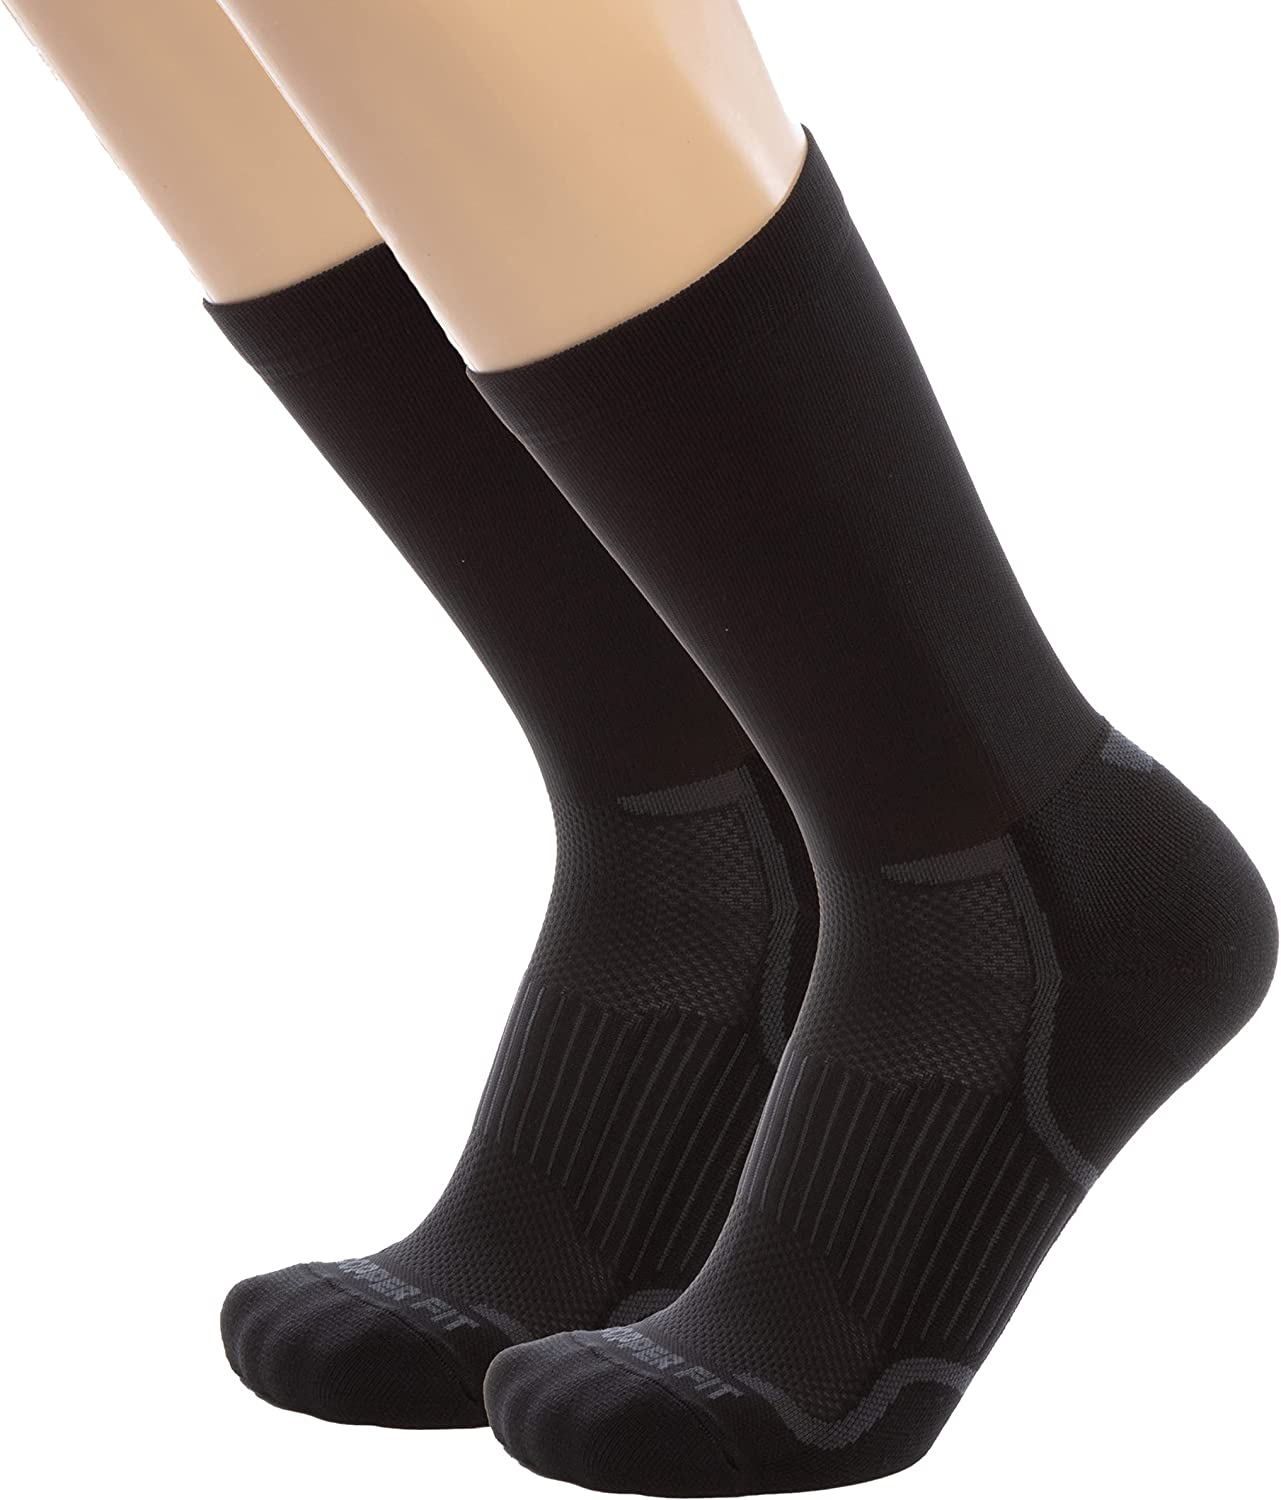 Copper Fit unisex-adult Copper Fit Energy Copper Infused Crew Socks, 2 Pack